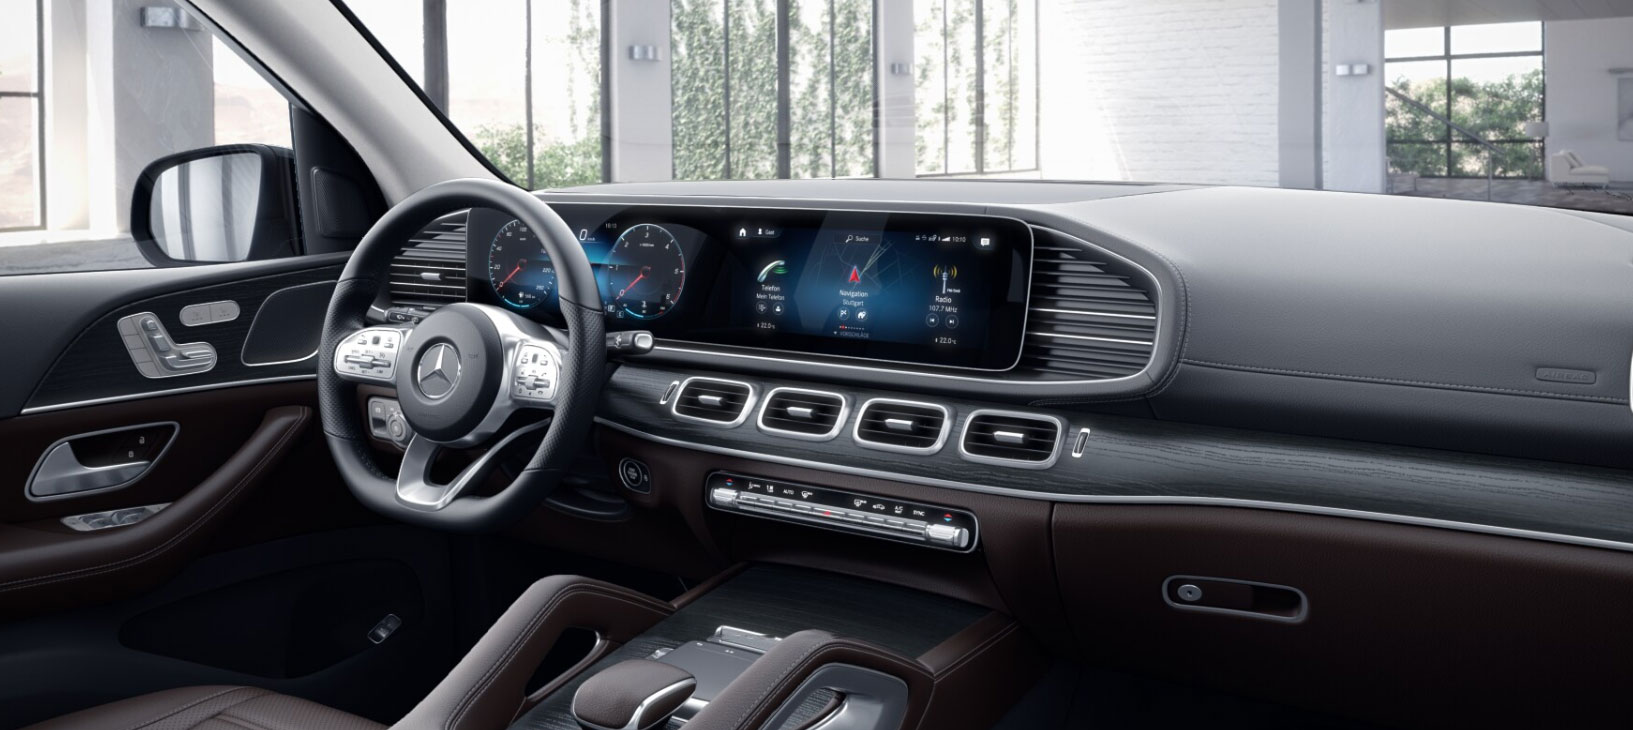 Mercedes-Benz GLS 2019 кокпит